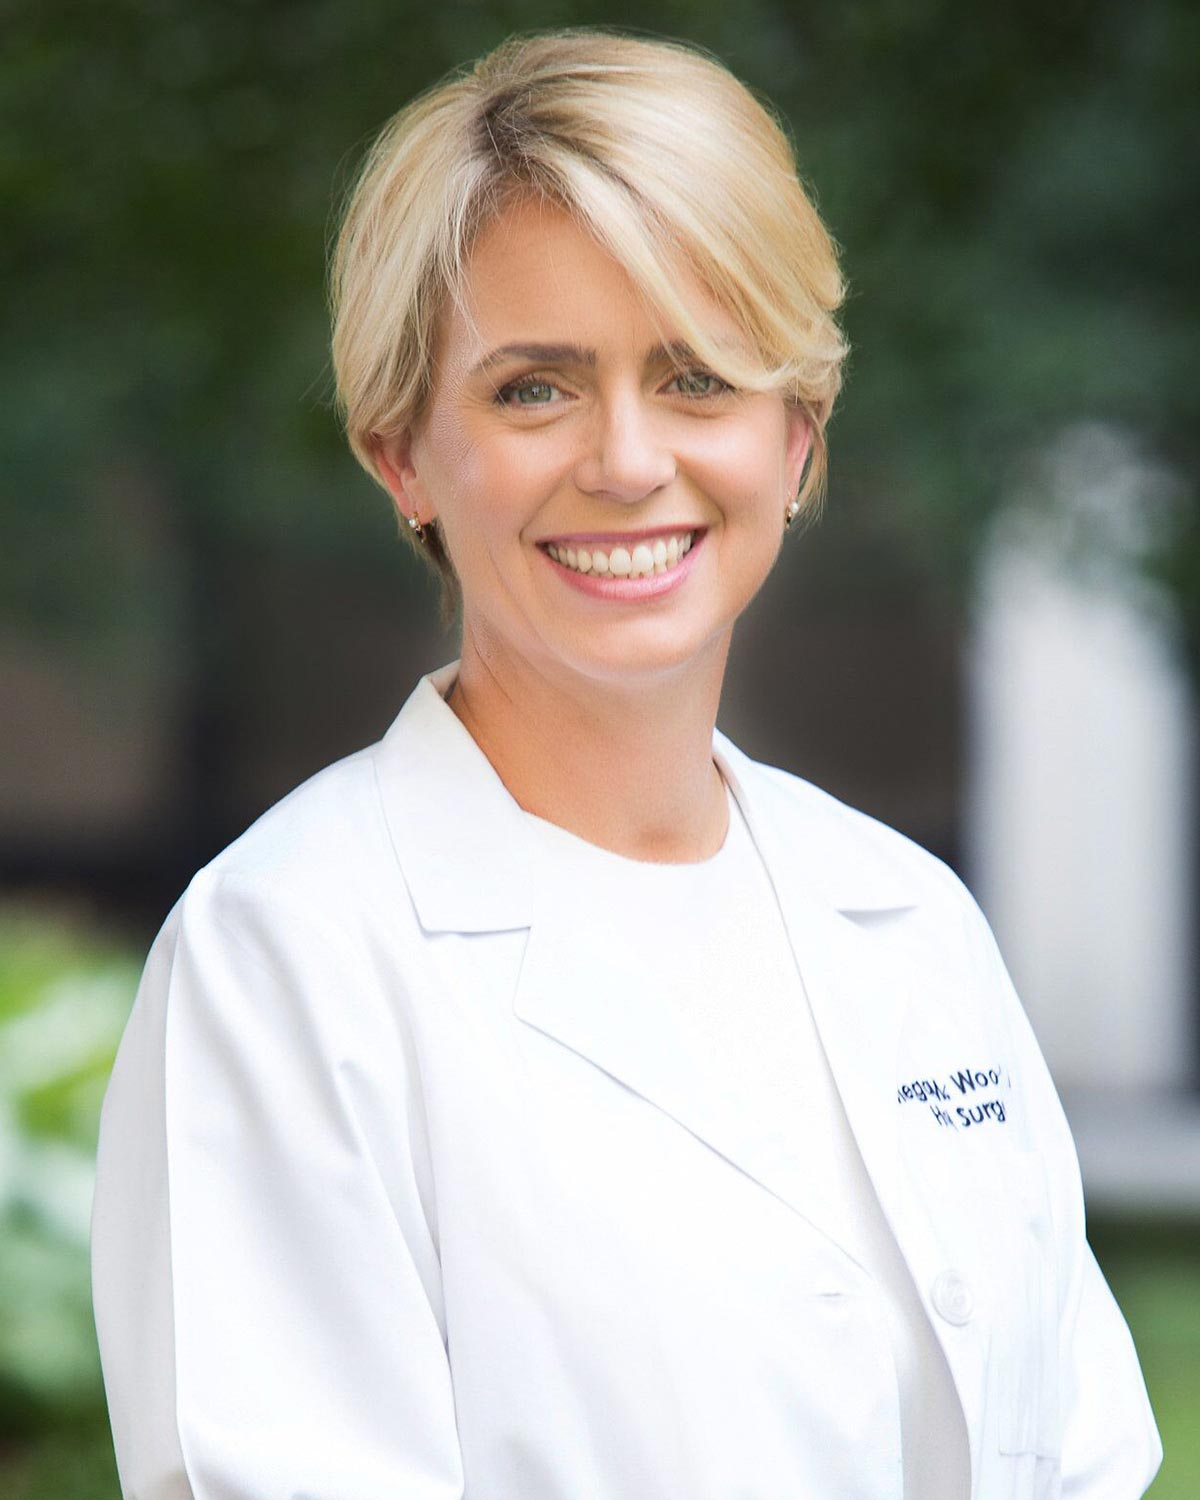 Megan M. Wood, MD